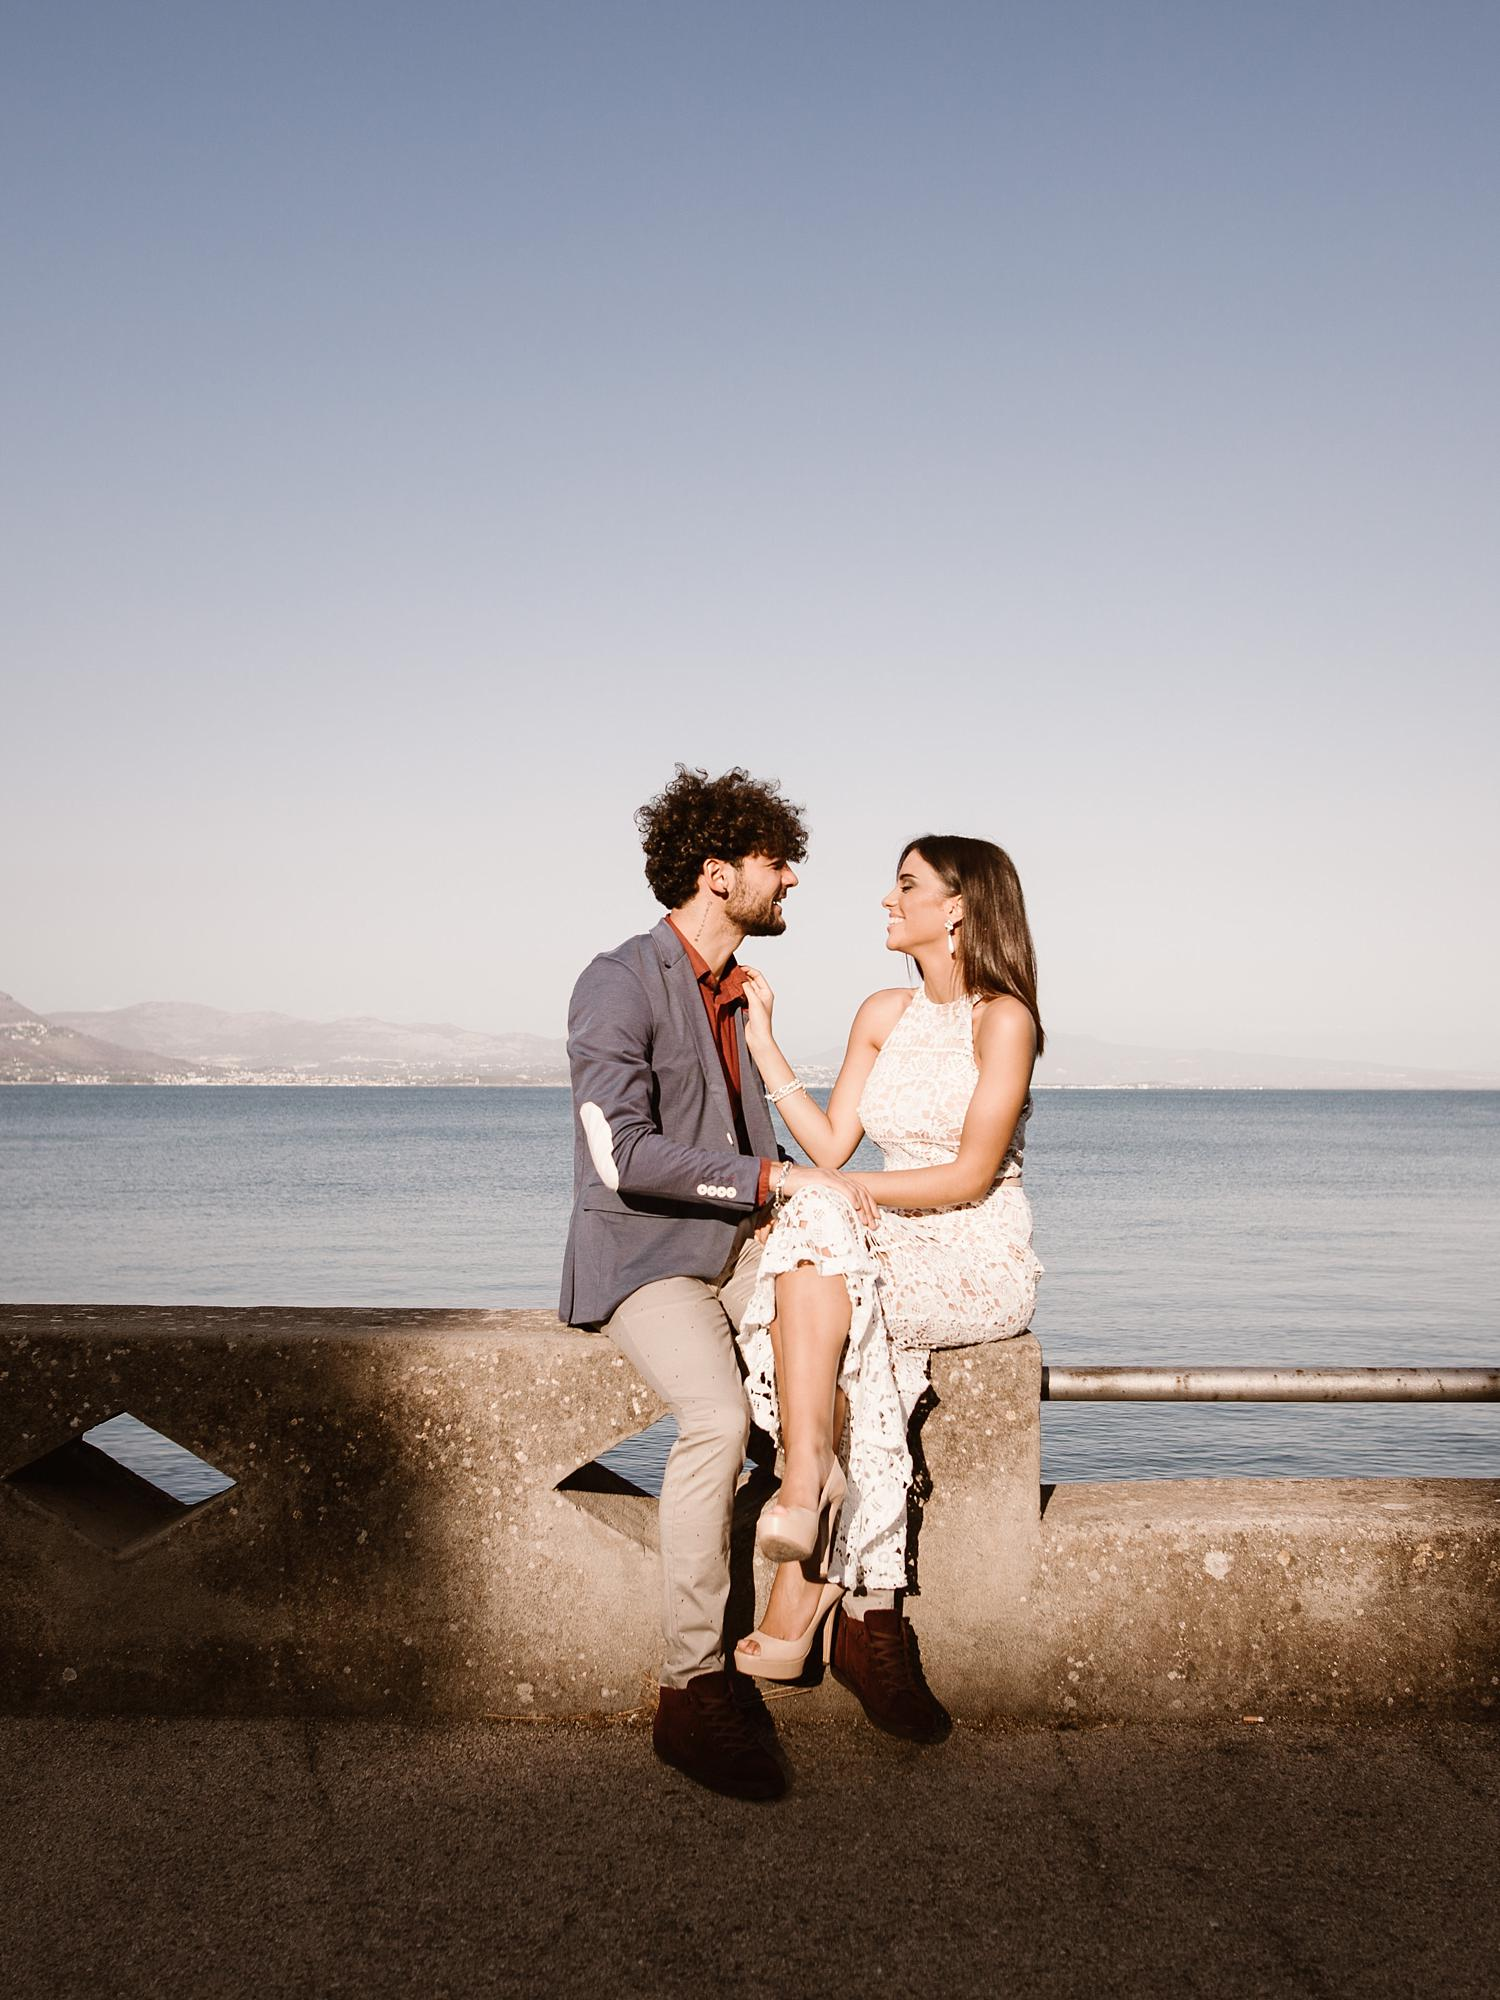 mf weddingphotographer rome 16 - Marika & Franklin - Intimate Session in Gaeta